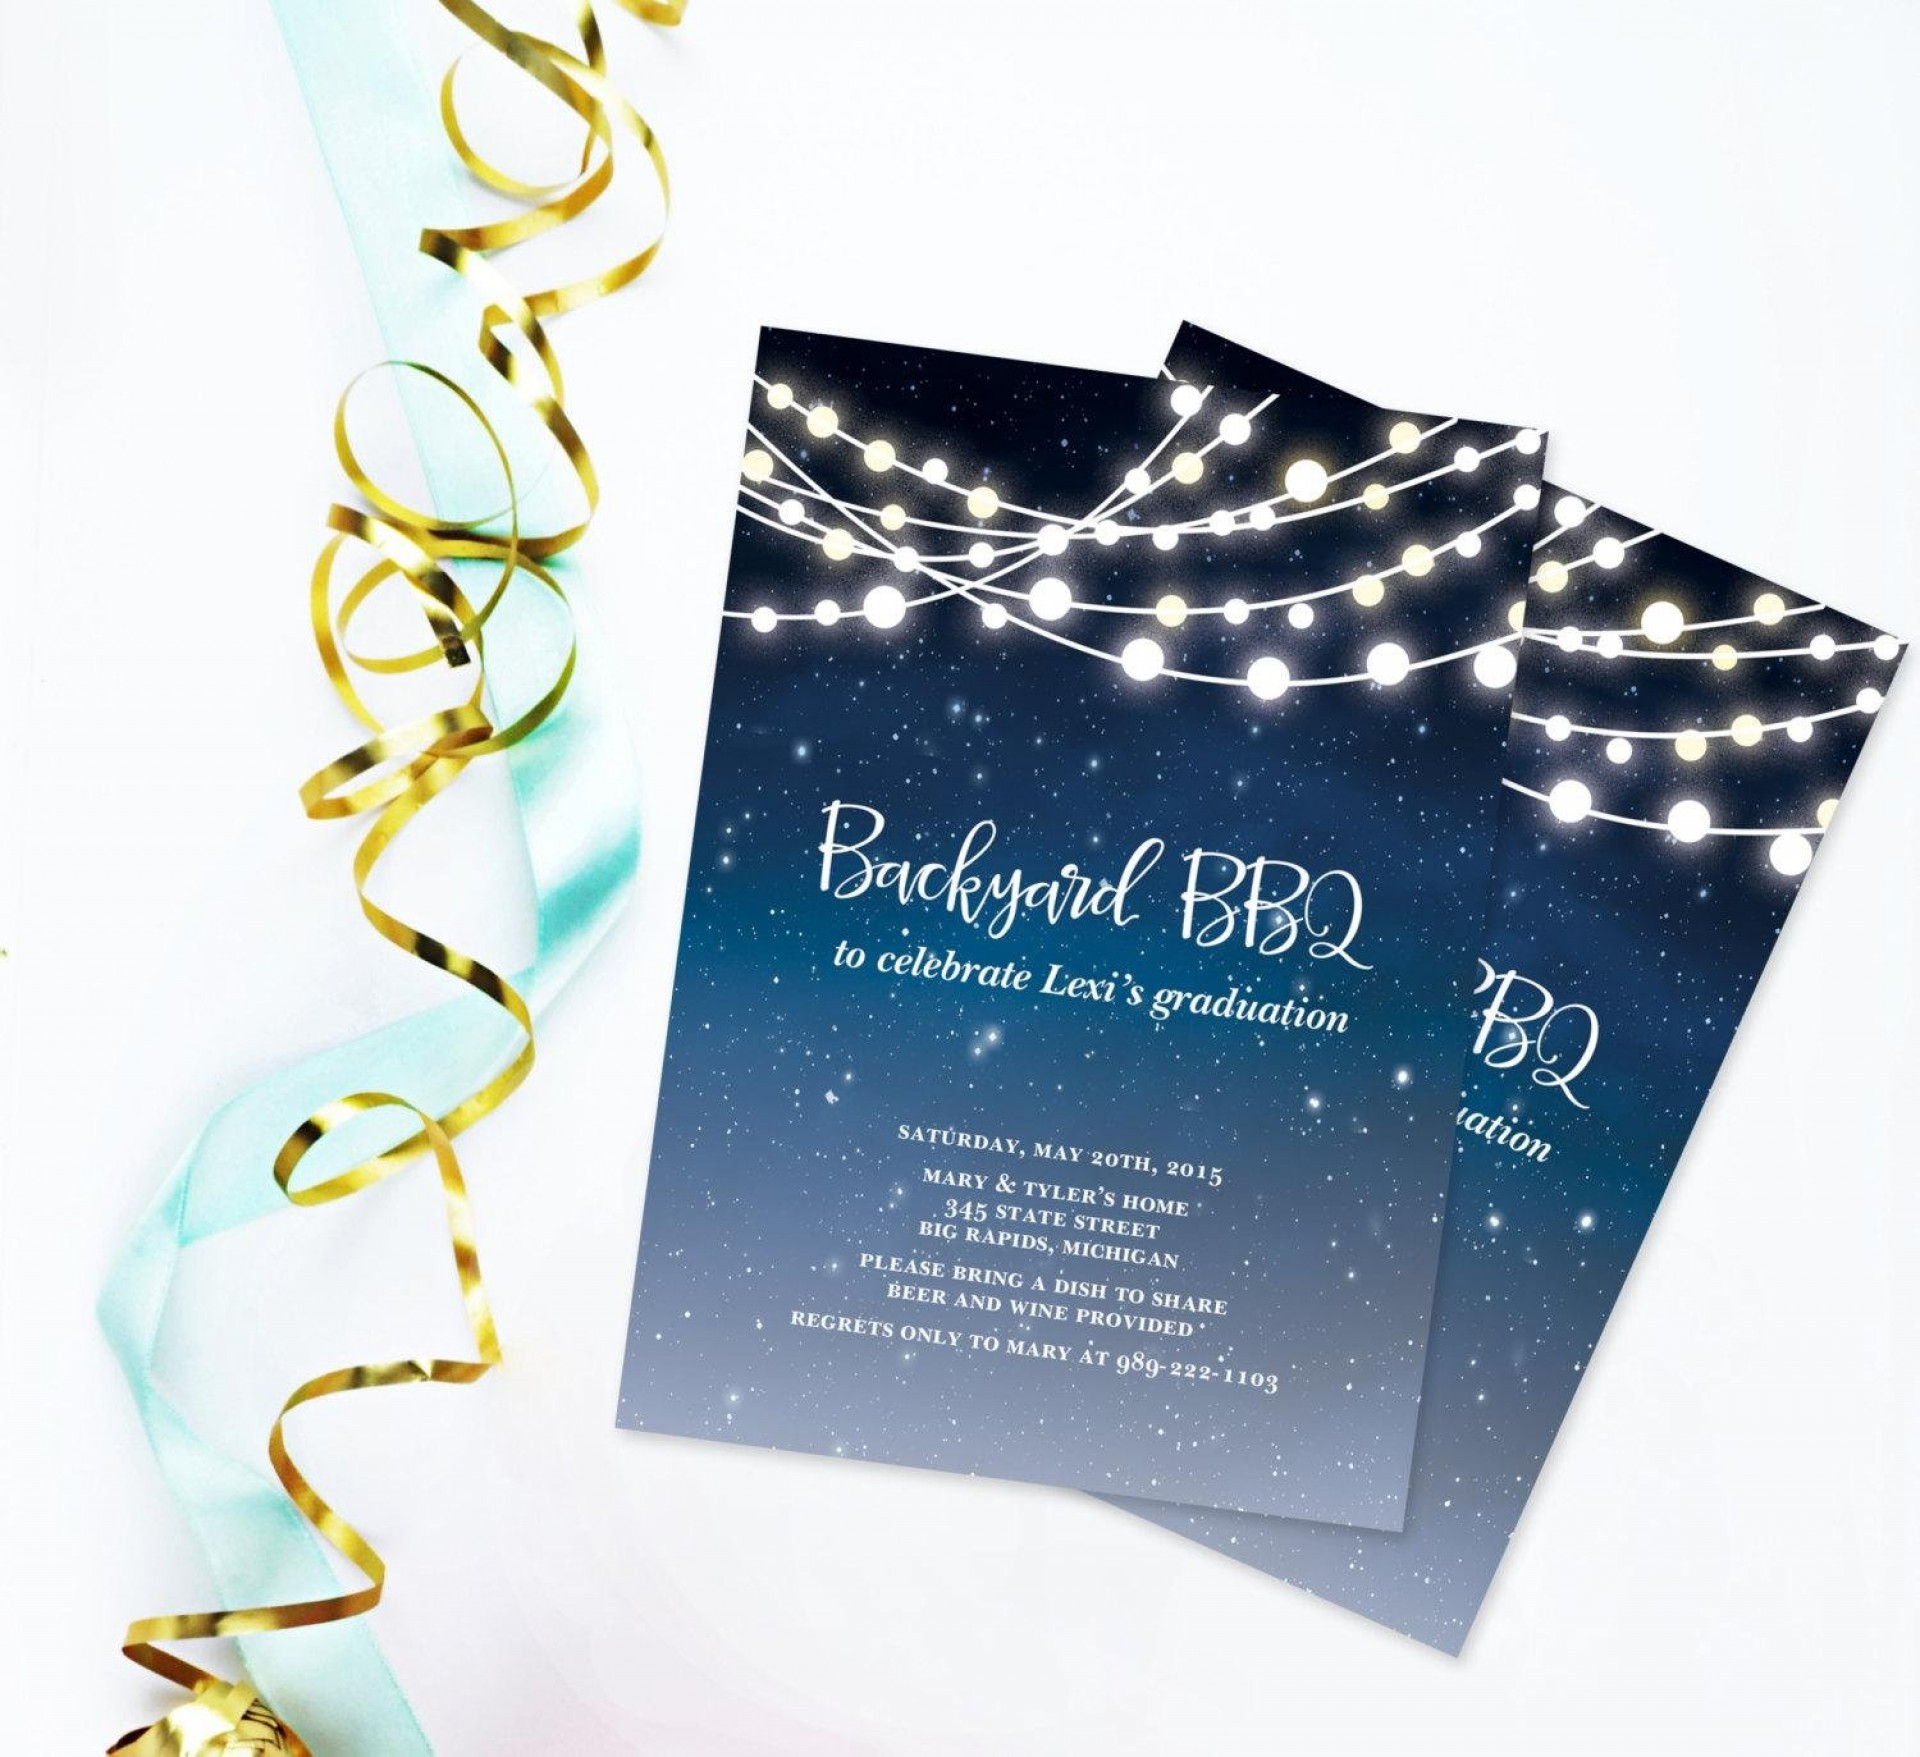 Graduation Party Invitation Templates Powerpoint | Best Business - Free Printable Graduation Party Invitations 2014